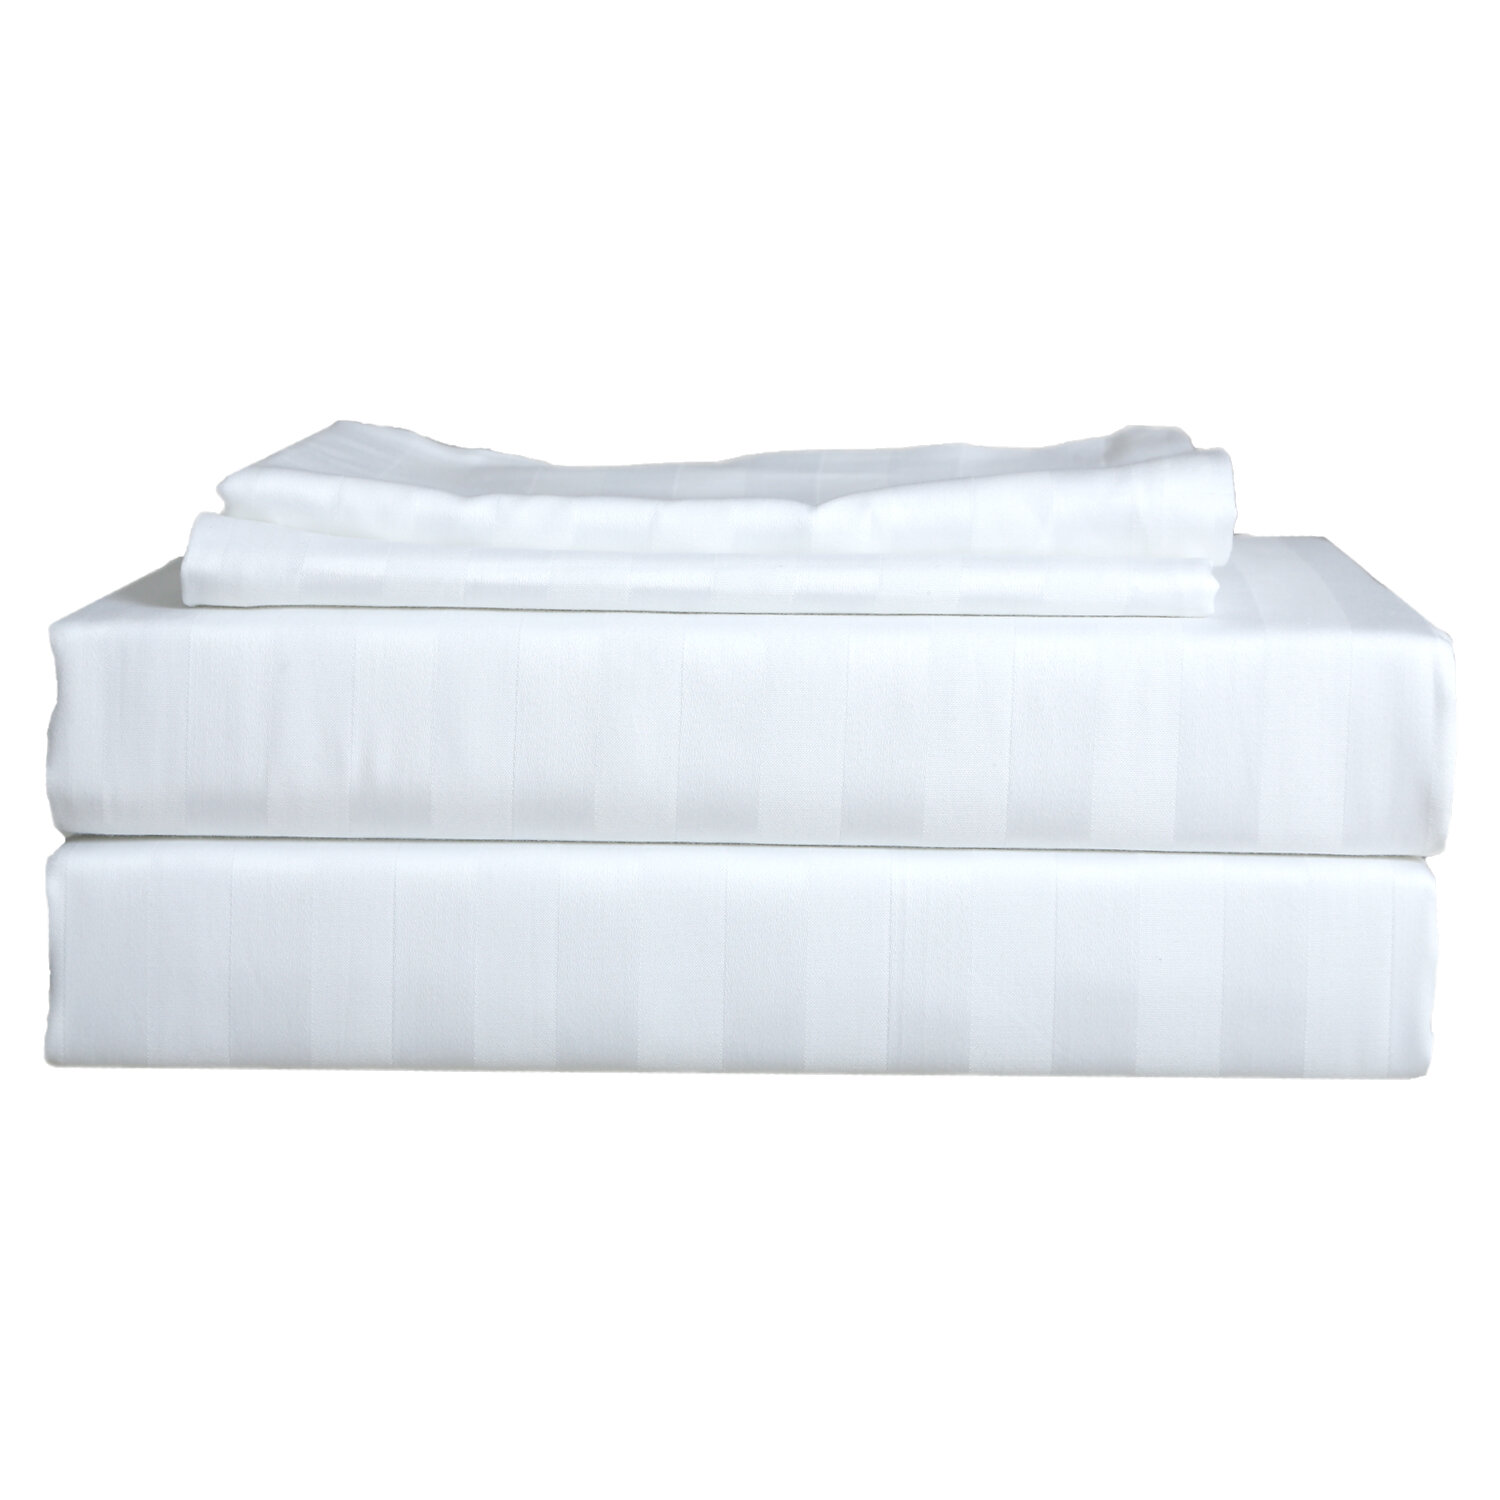 "4 /""A GREAT BUY/"" 300 THREAD COUNT KING SIZE PILLOW CASES-100/% SATEEN COTTON"